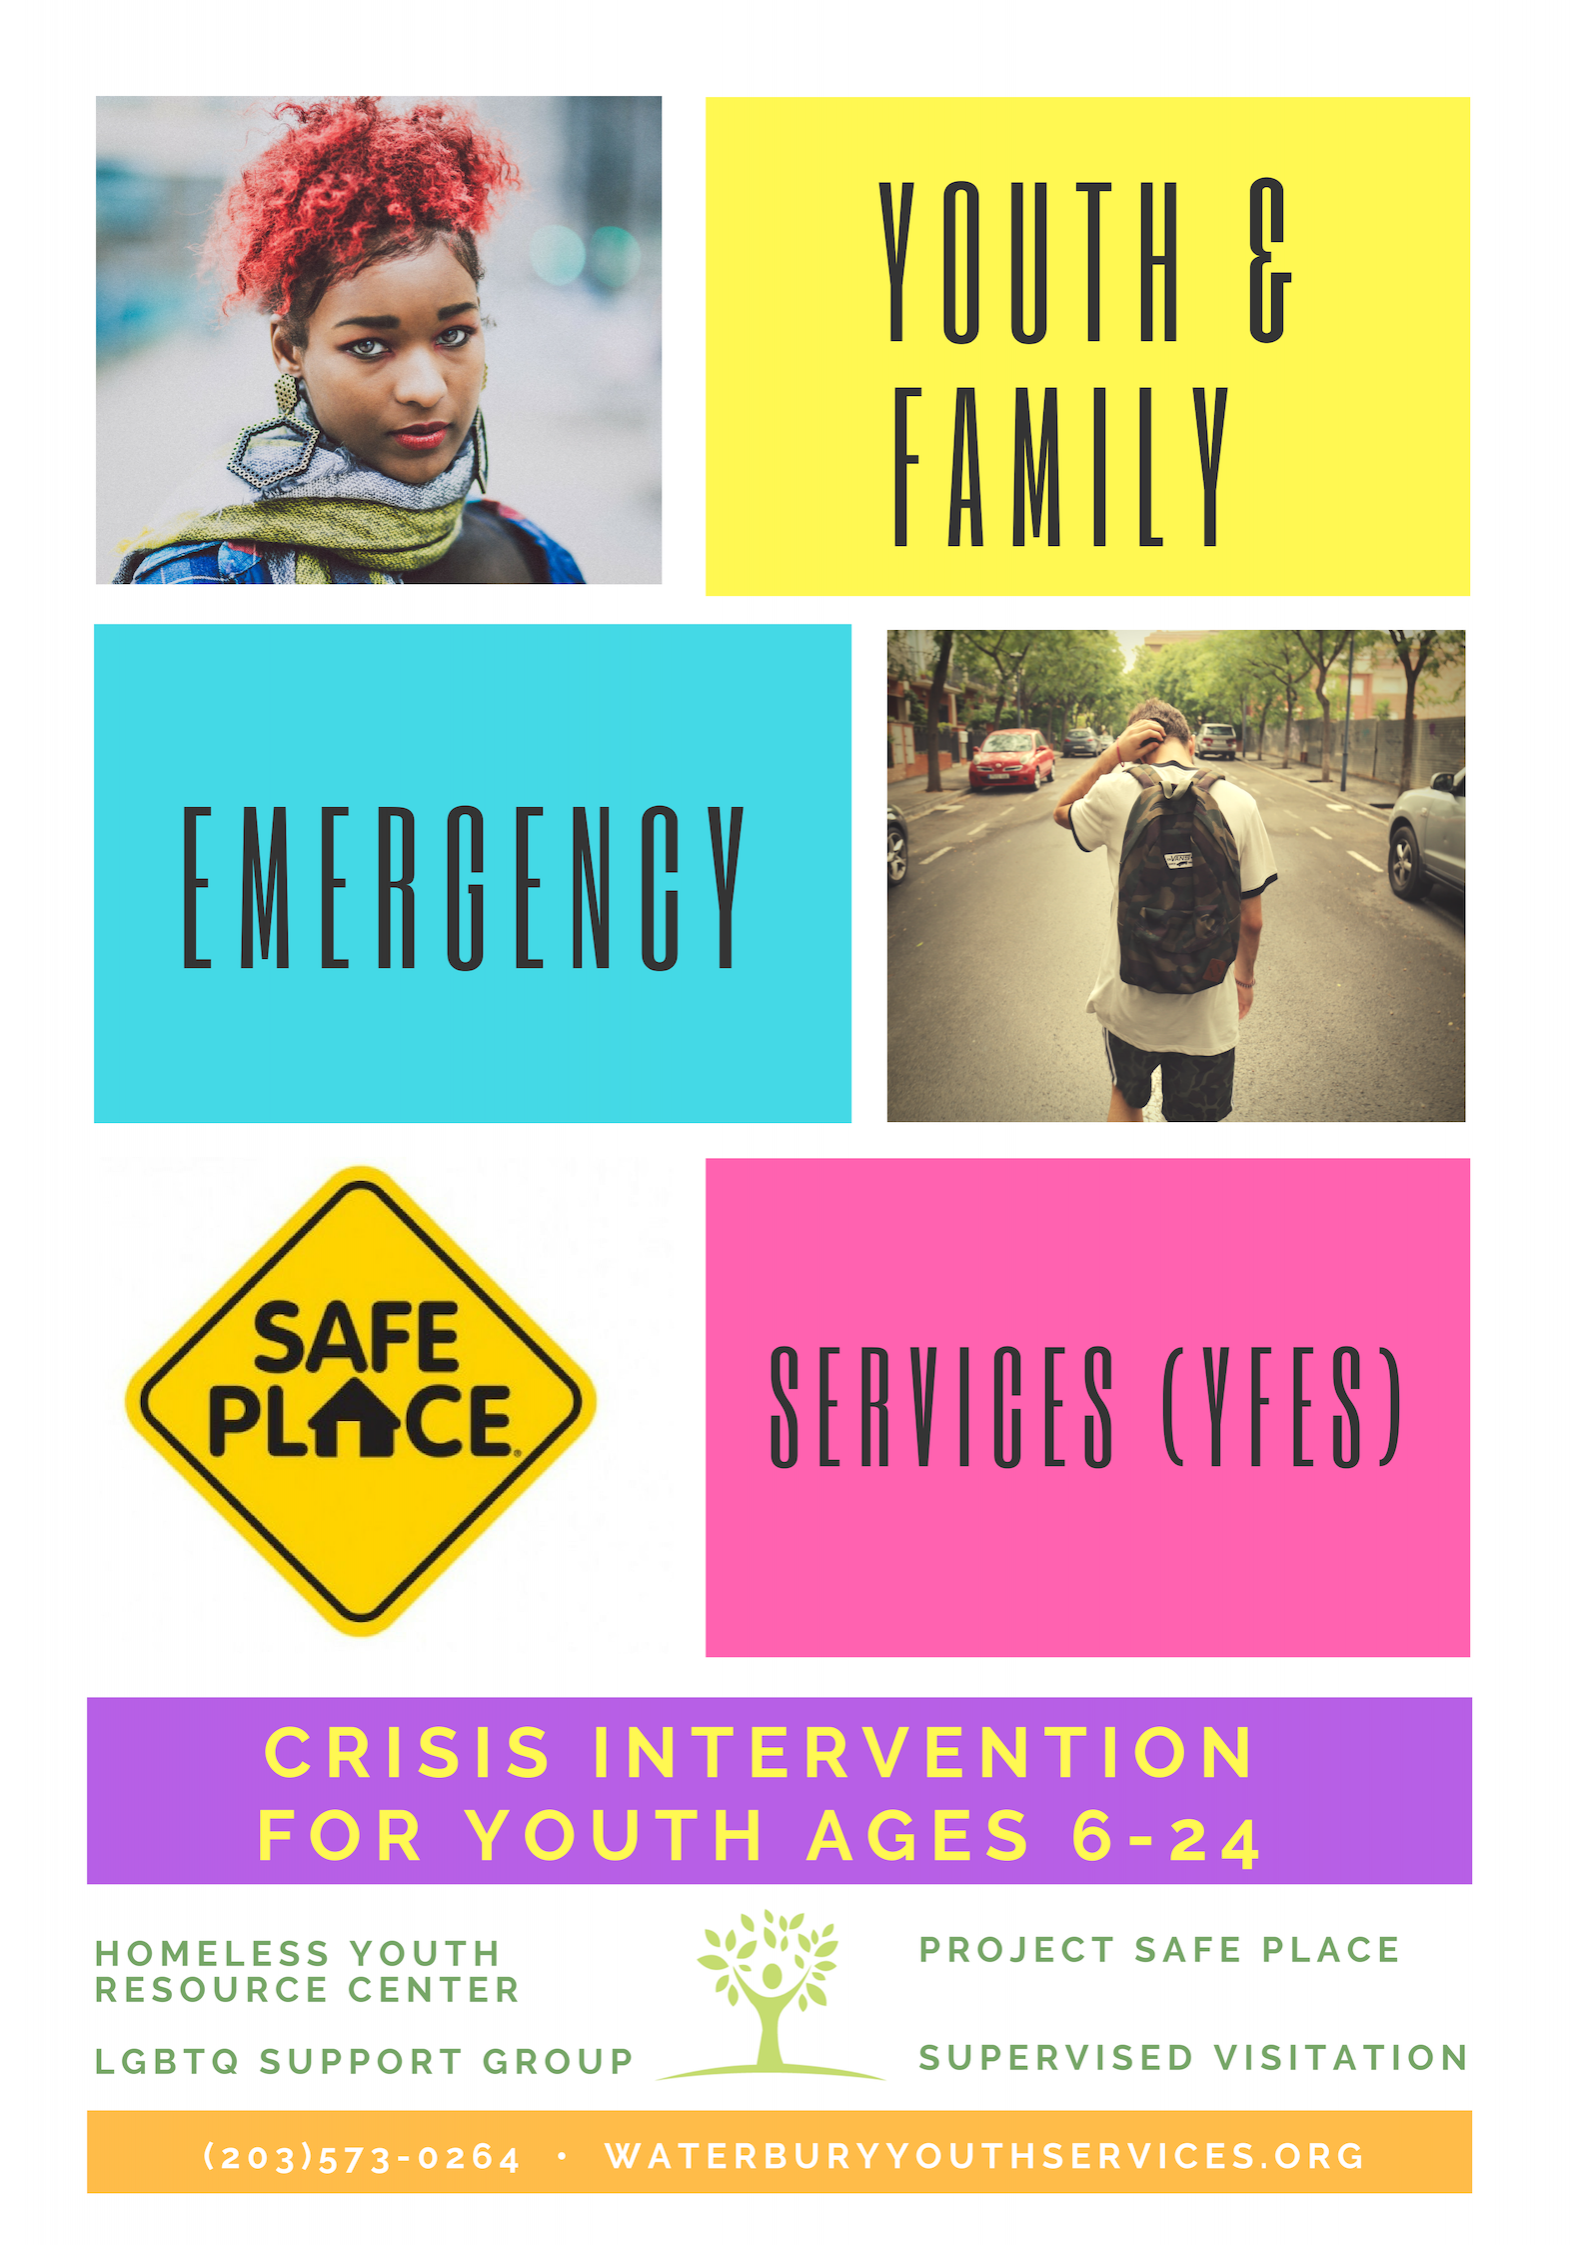 Youth & Family Emergency Services